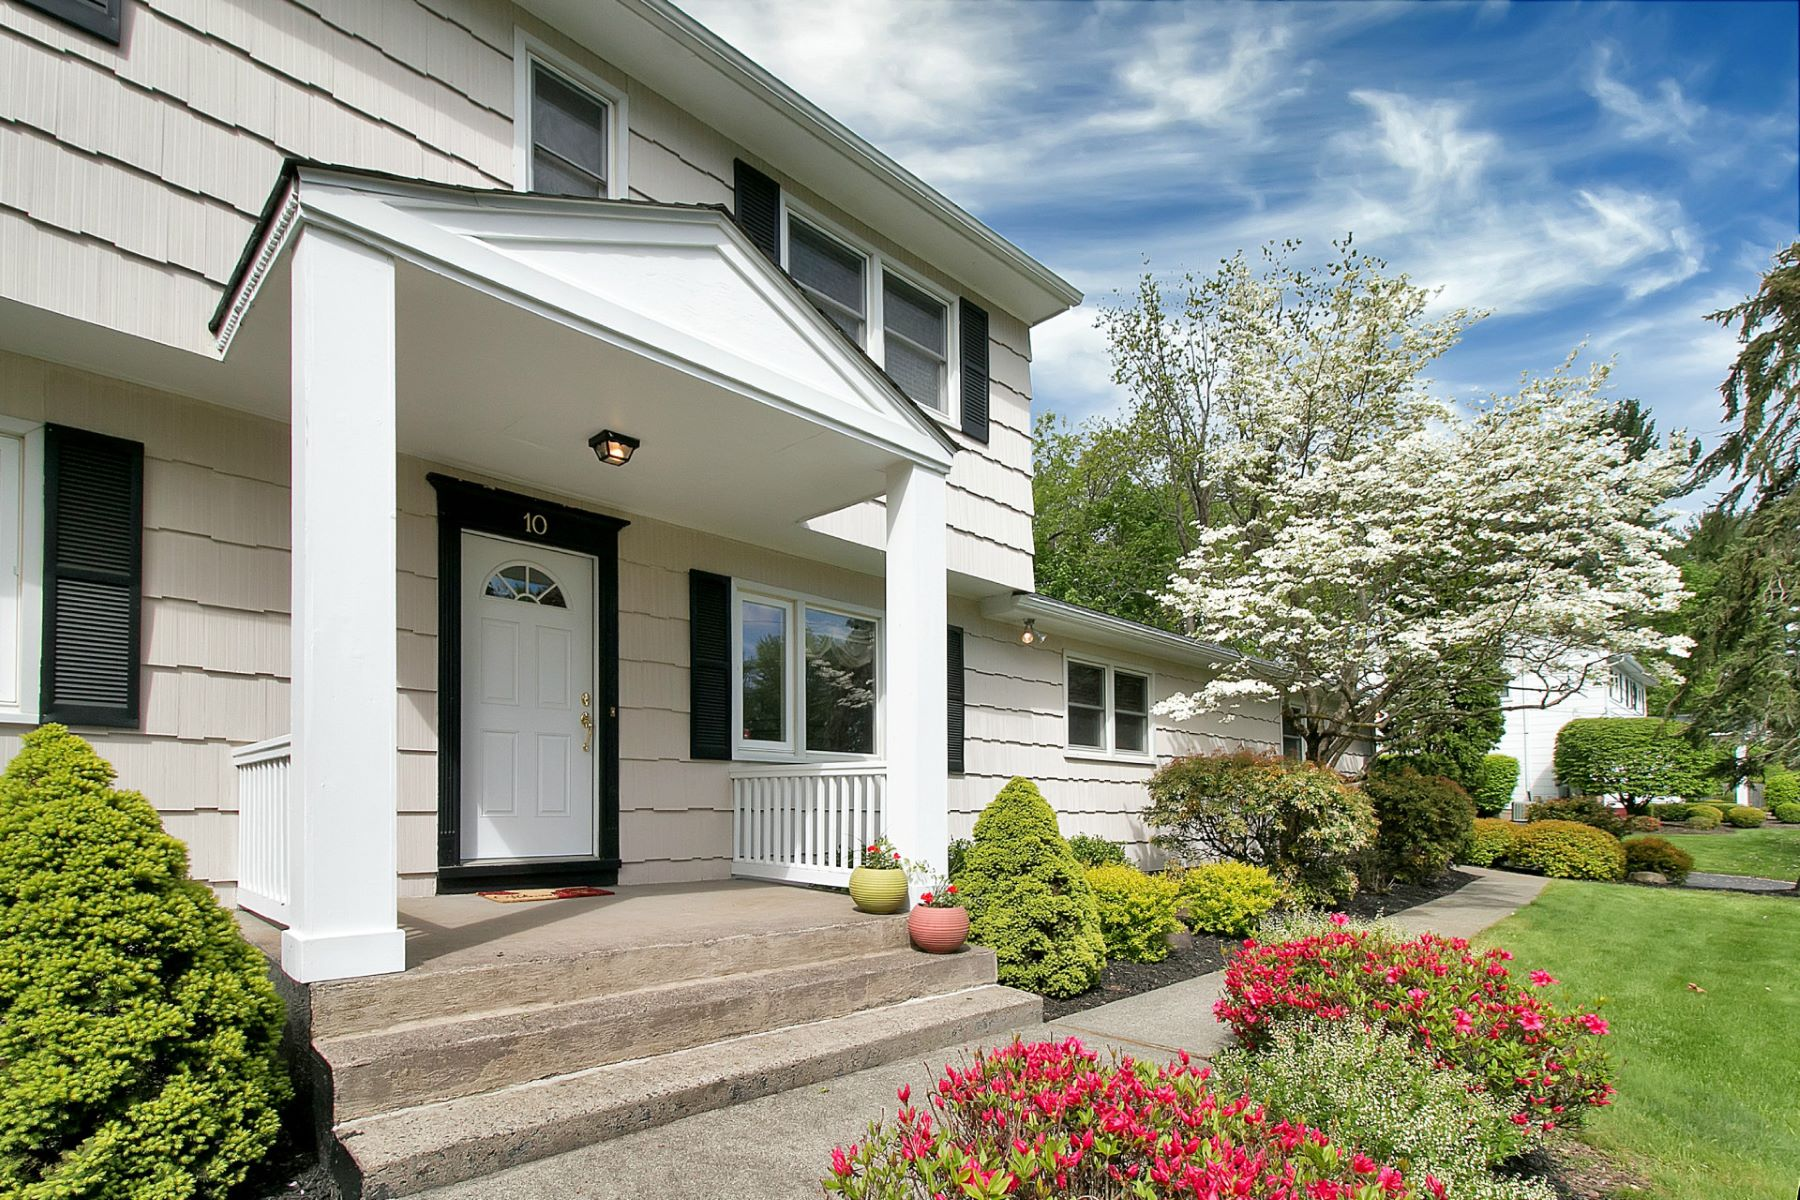 Single Family Home for Sale at Colonial in Lush Landscaped Setting 10 Jennifer Drive New City, New York 10956 United States